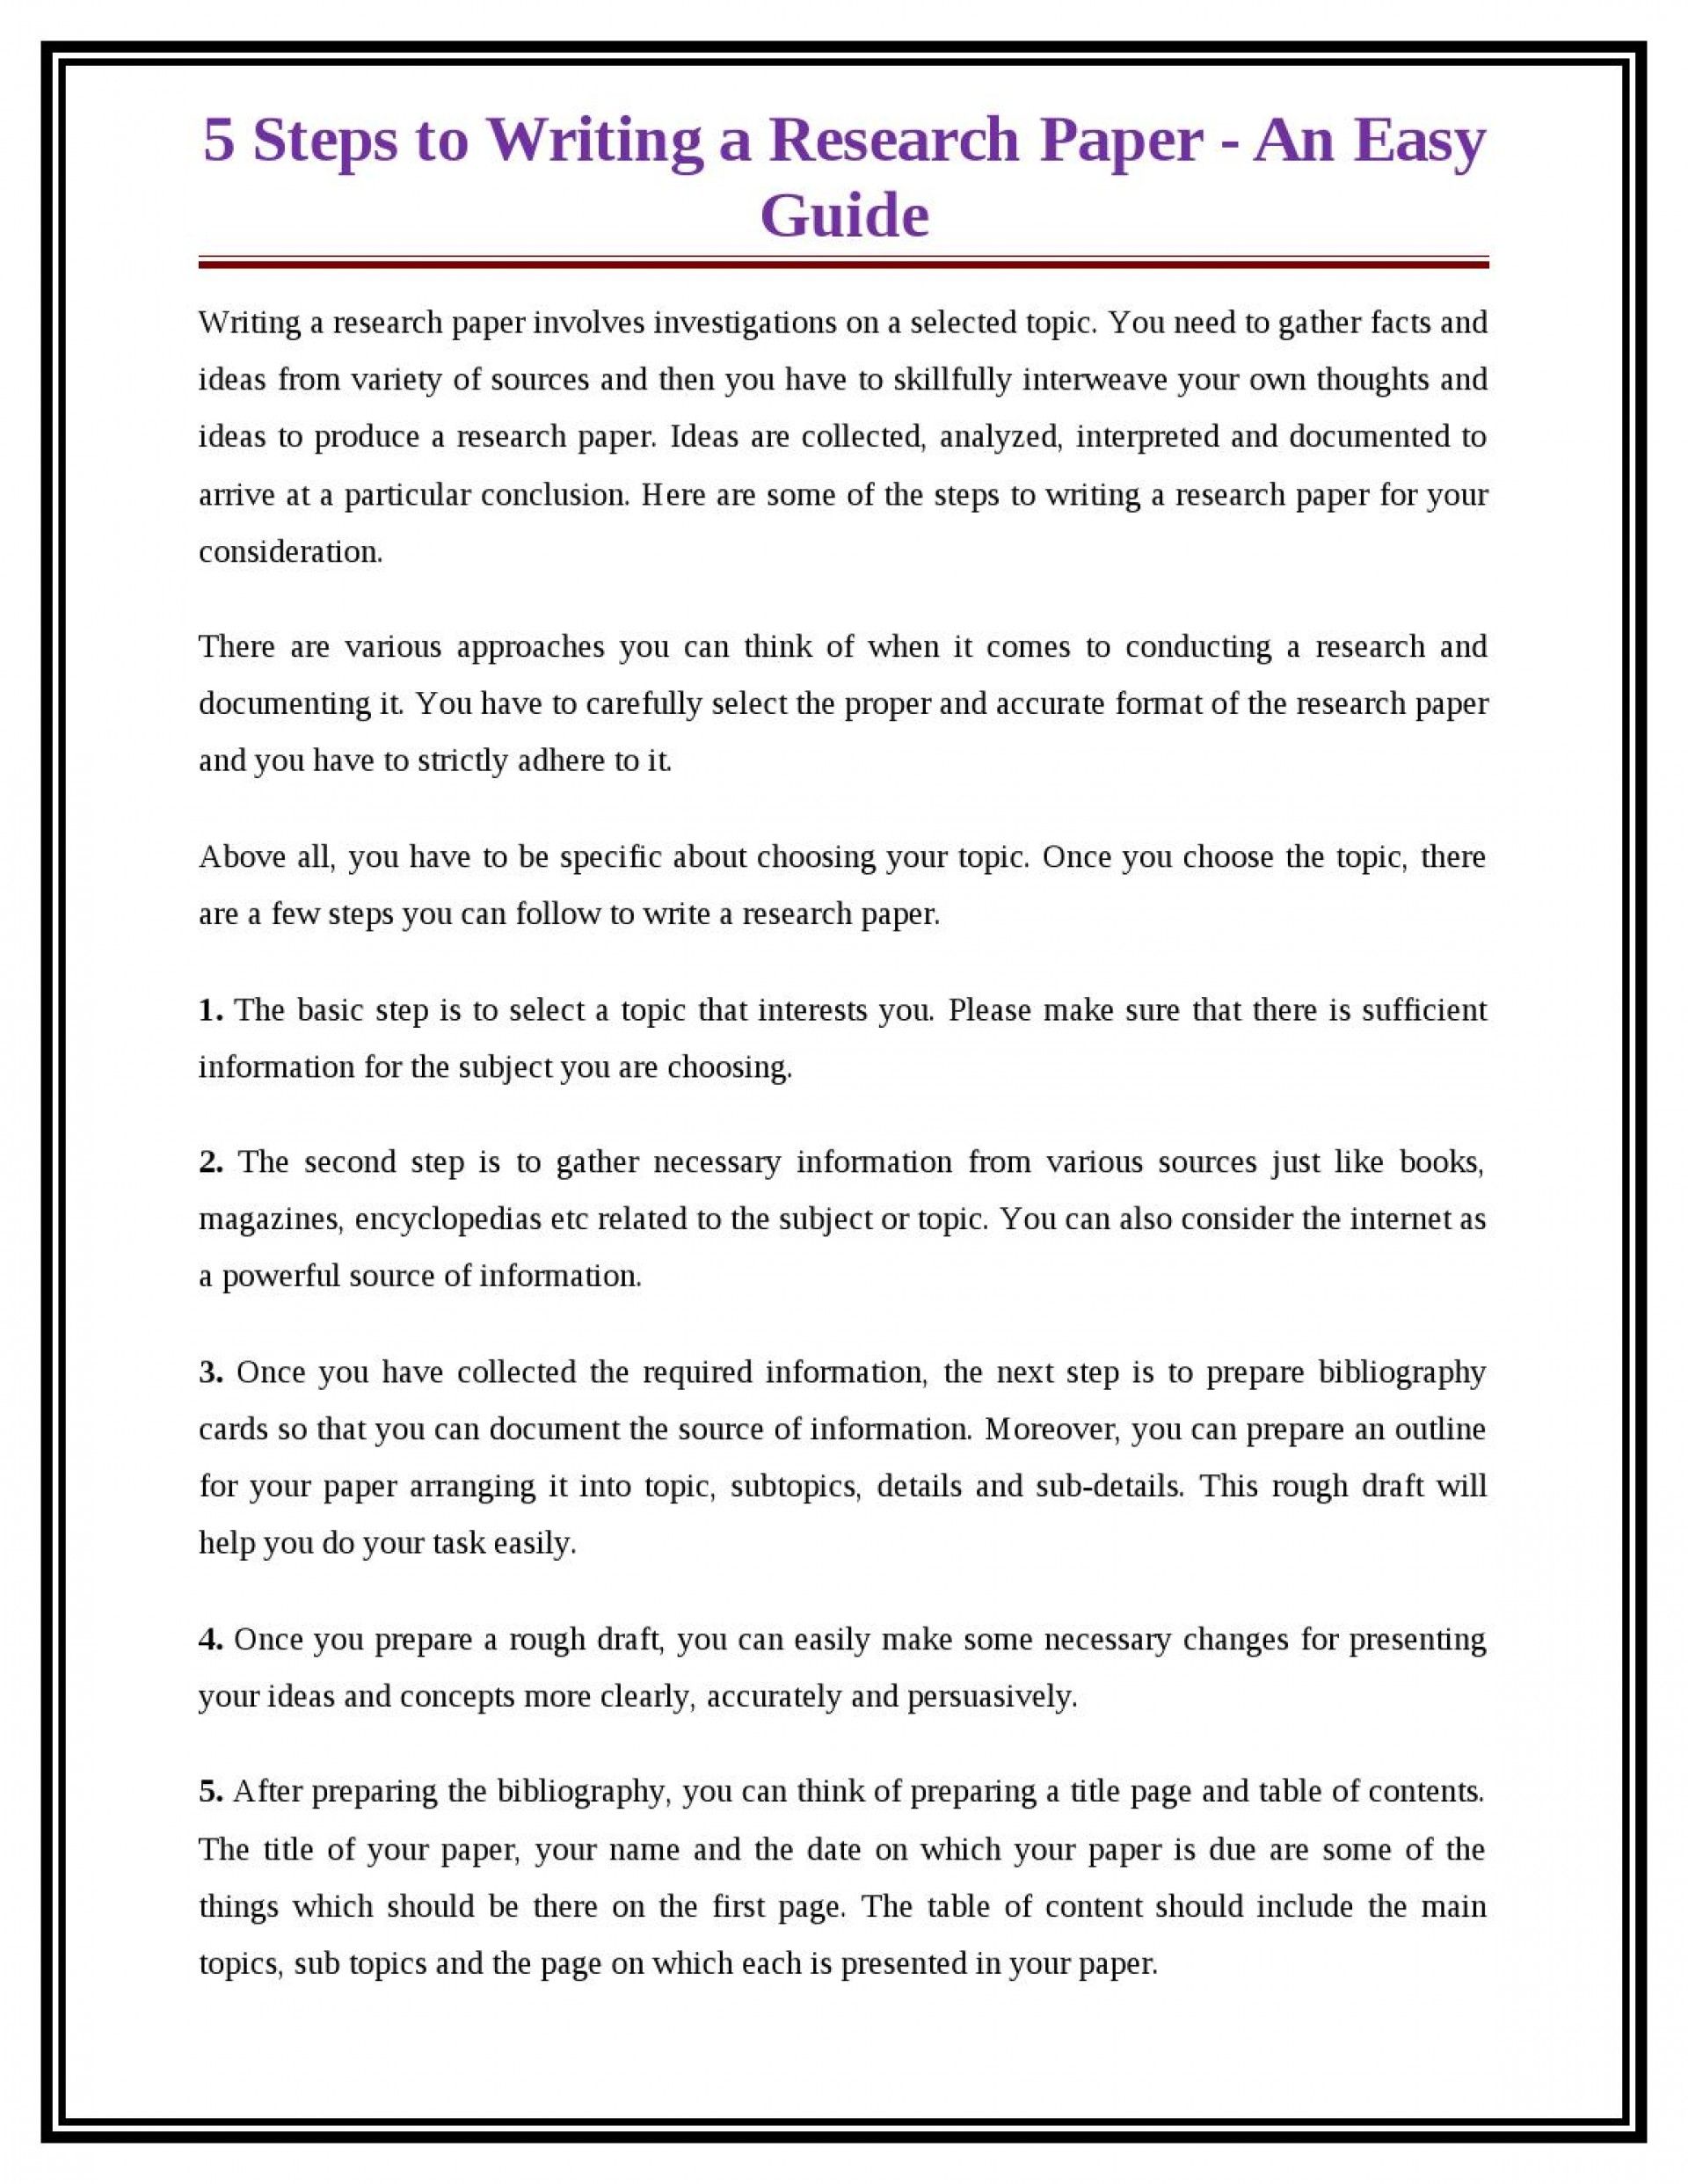 005 Research Paper Steps For Writing Page 1 Breathtaking A In Ppt 10 To Write Basic Easy 1920